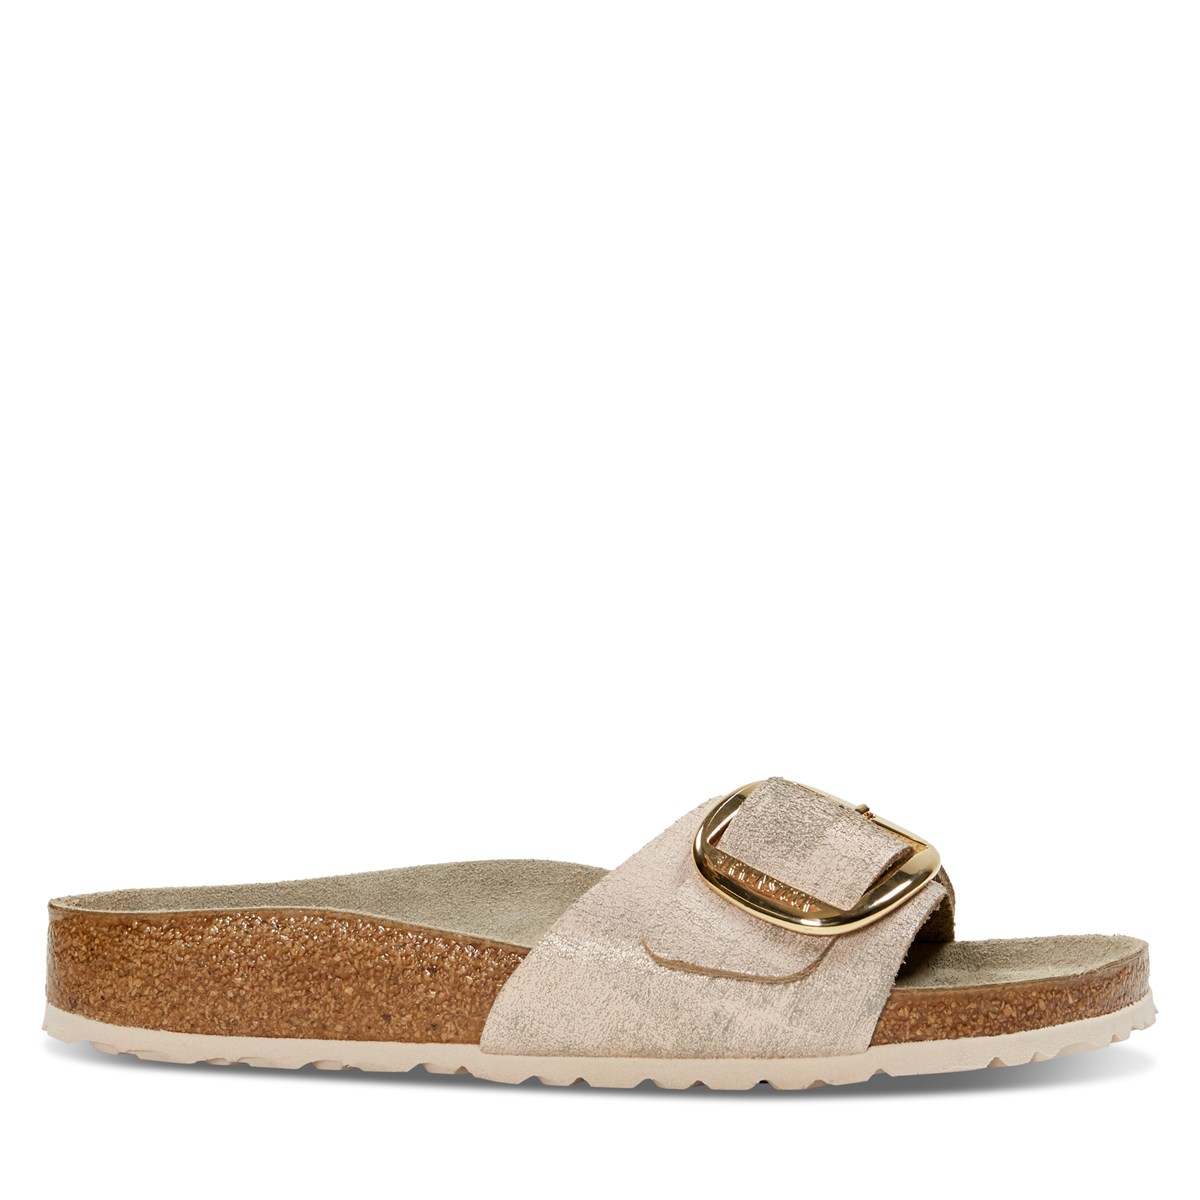 Women's Madrid Big Buckle Sandal in Metallic Rose